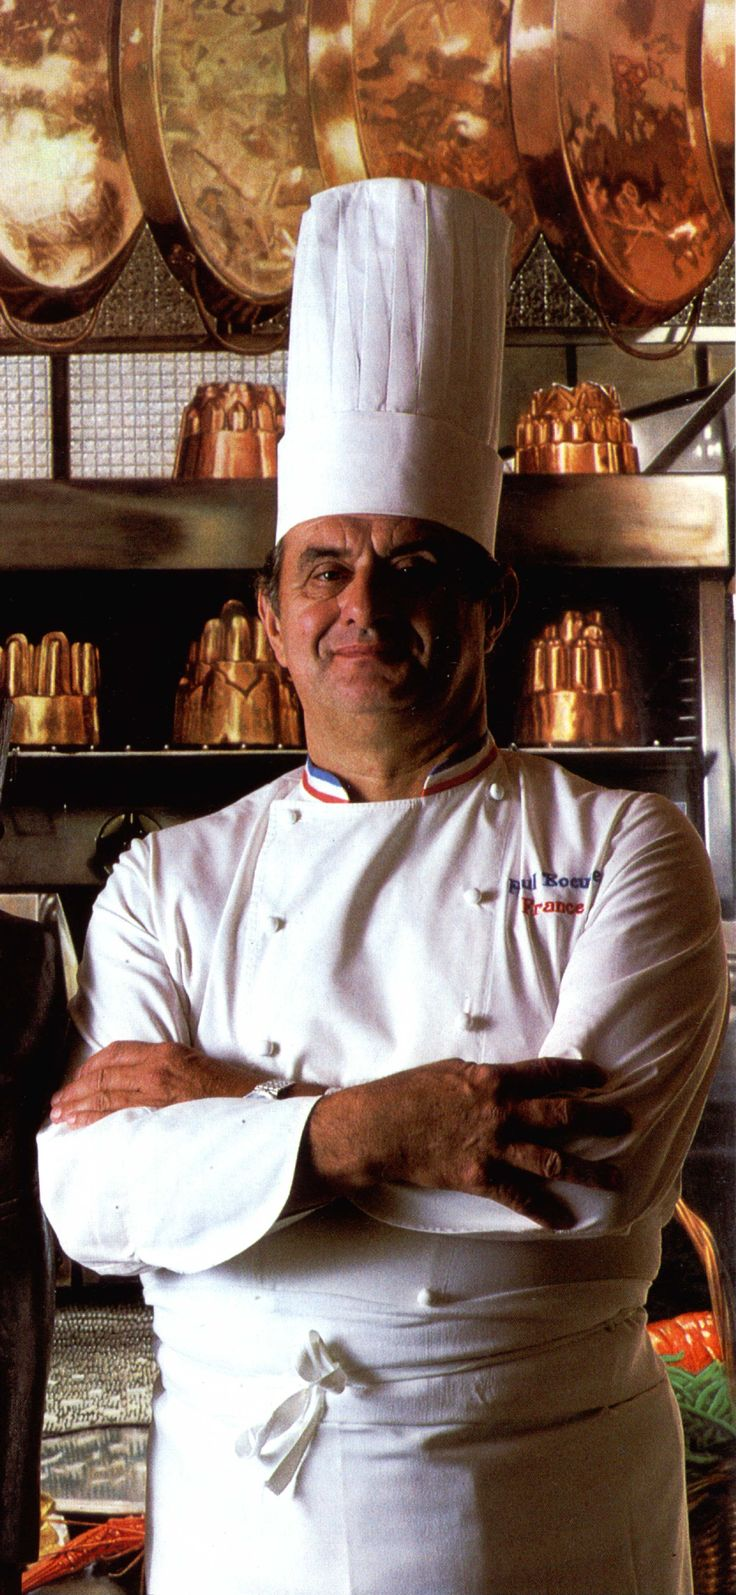 PAUL BOCUSE: One of the most famous Chefs associated with Nouvelle cuisine. He is based in Lyon, FRANCE